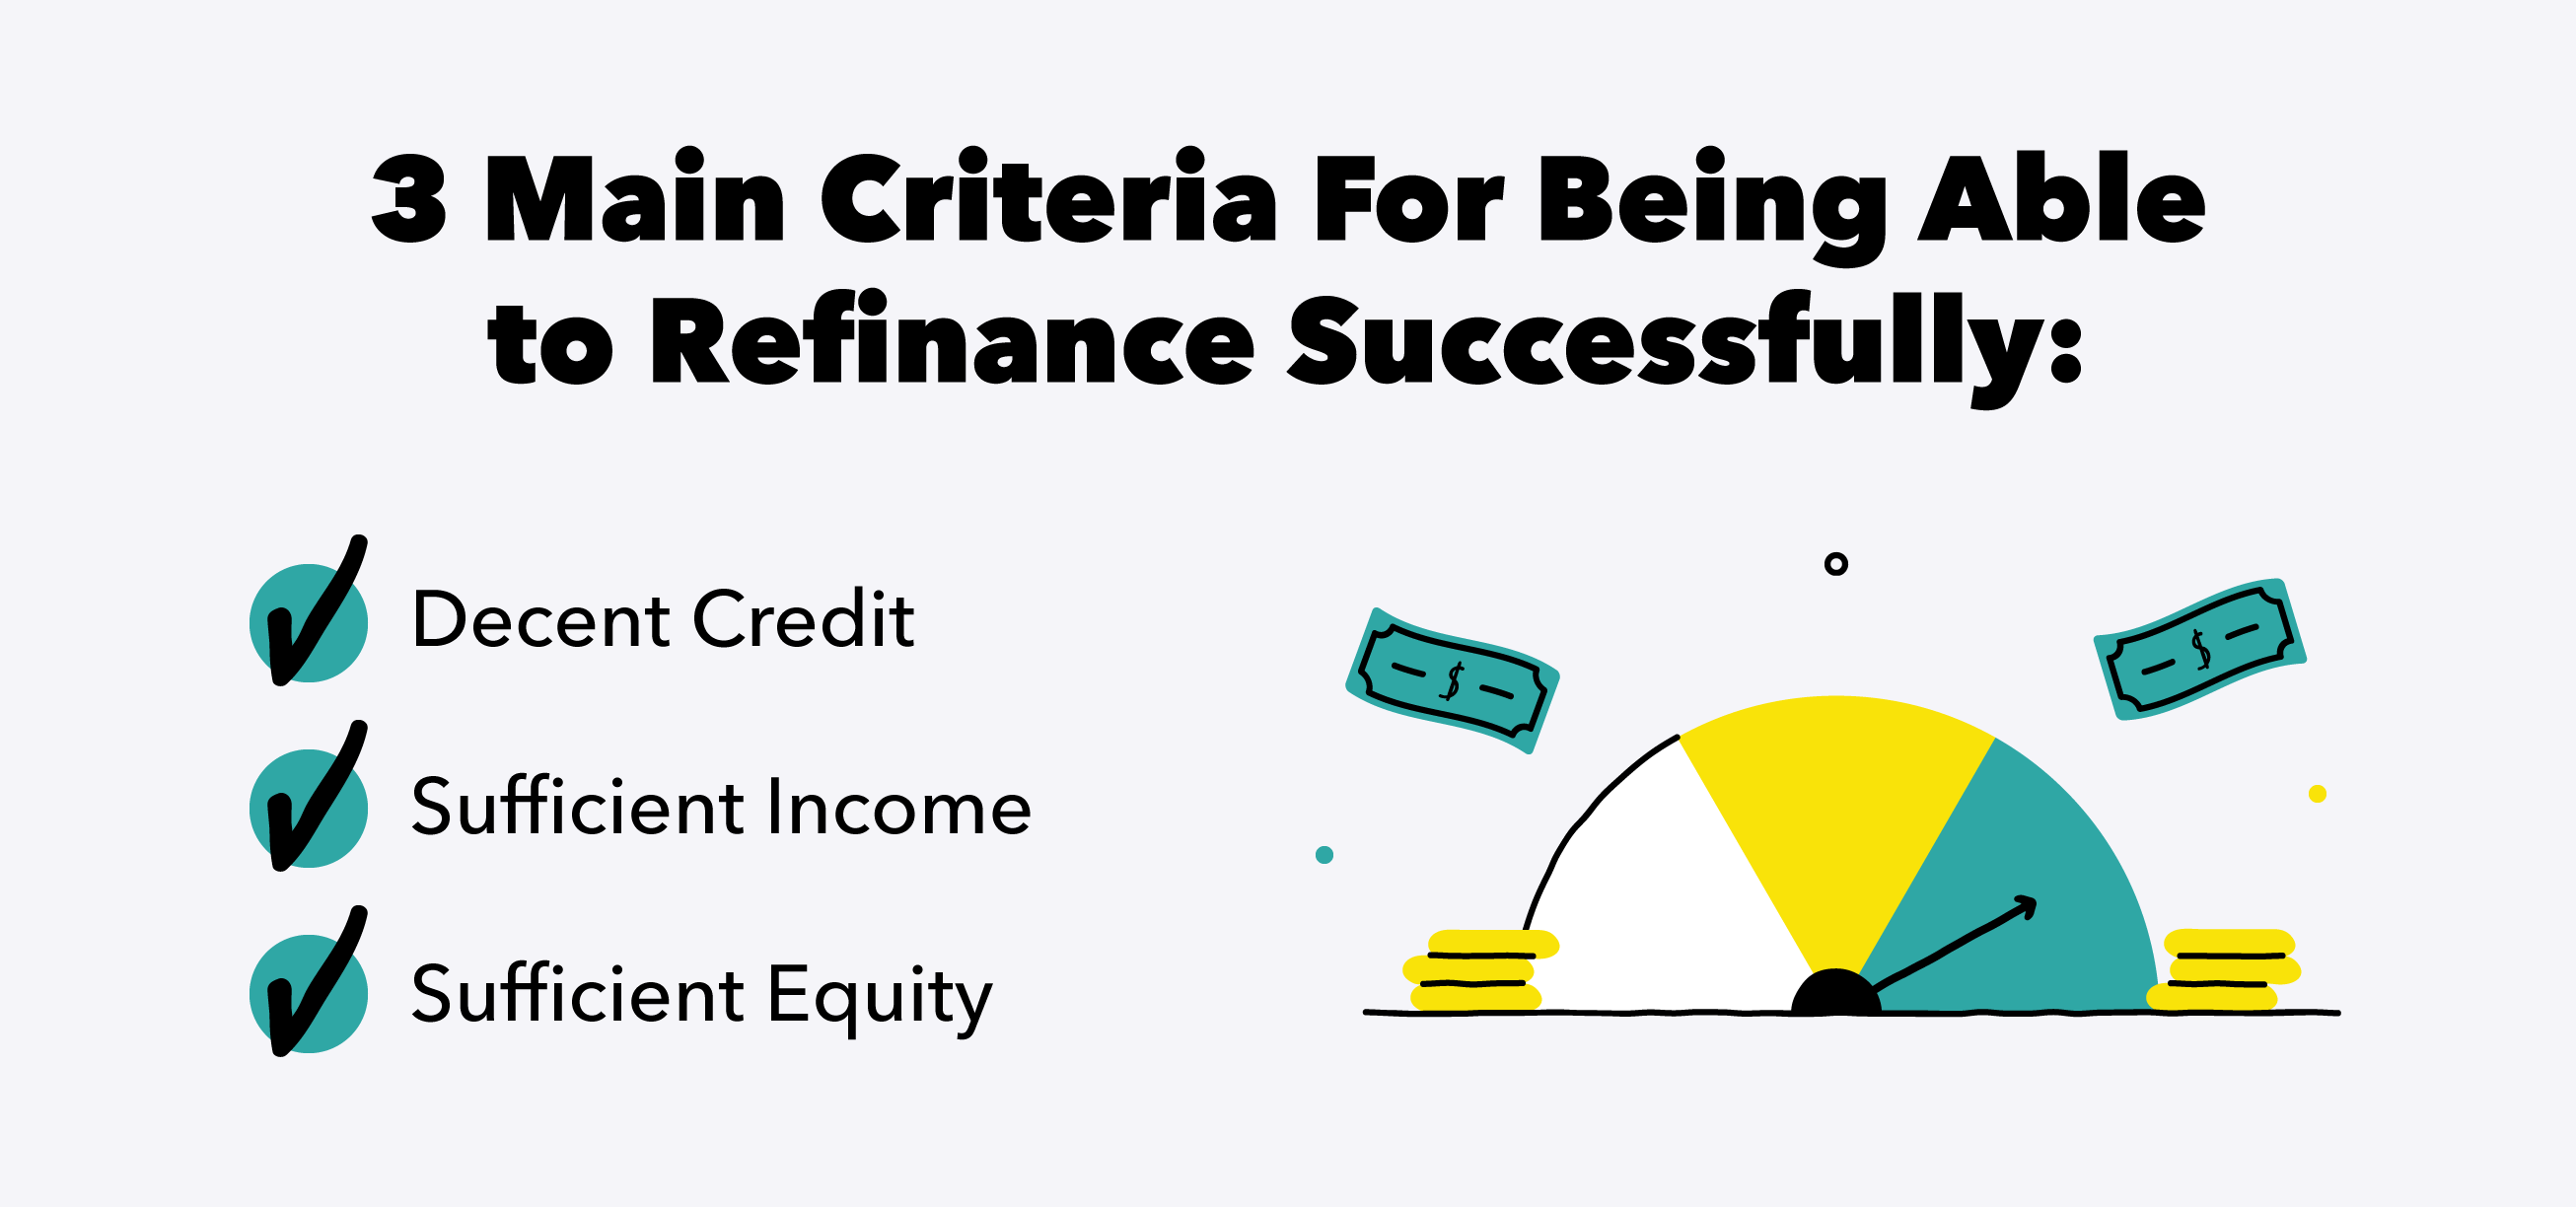 criteria-for-being-able-to-refinance-successfully